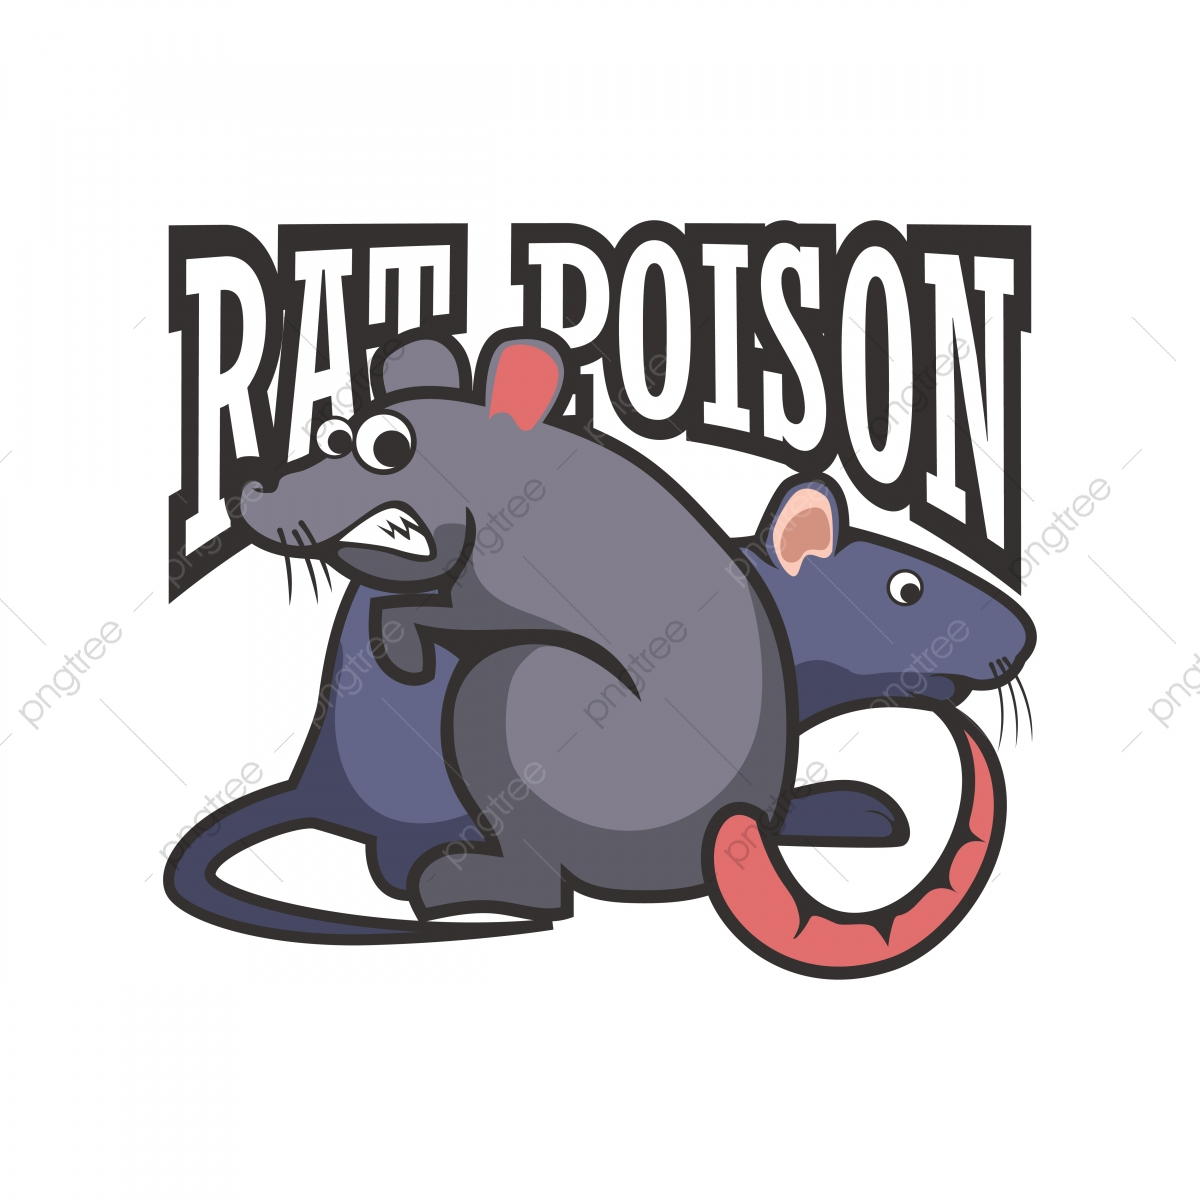 Mouse Poison Abstract Font With Frightening Rats, Rats, Rat.